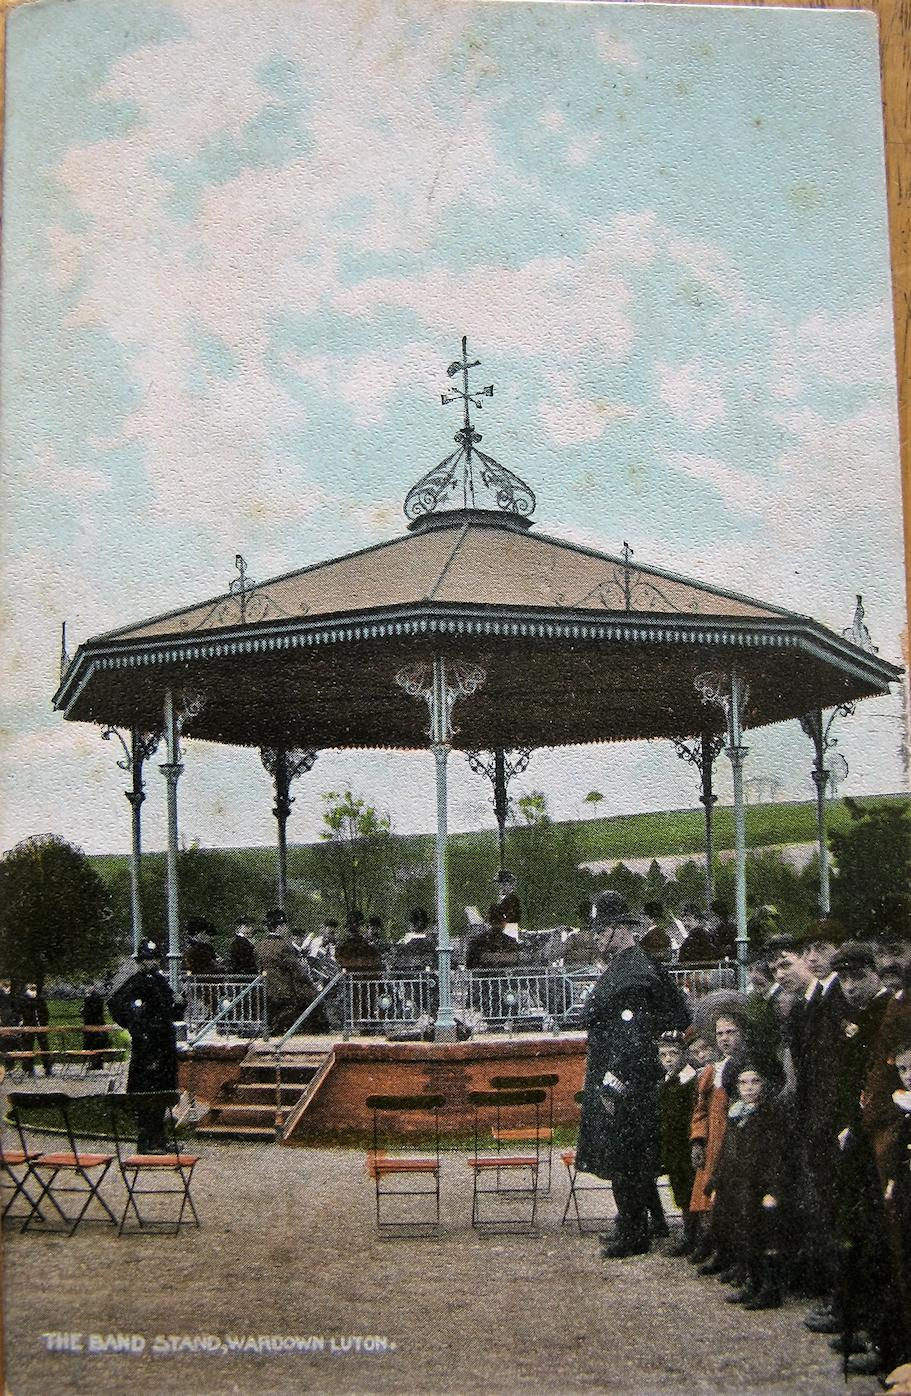 image of Bandstand at Wardown Park Luton